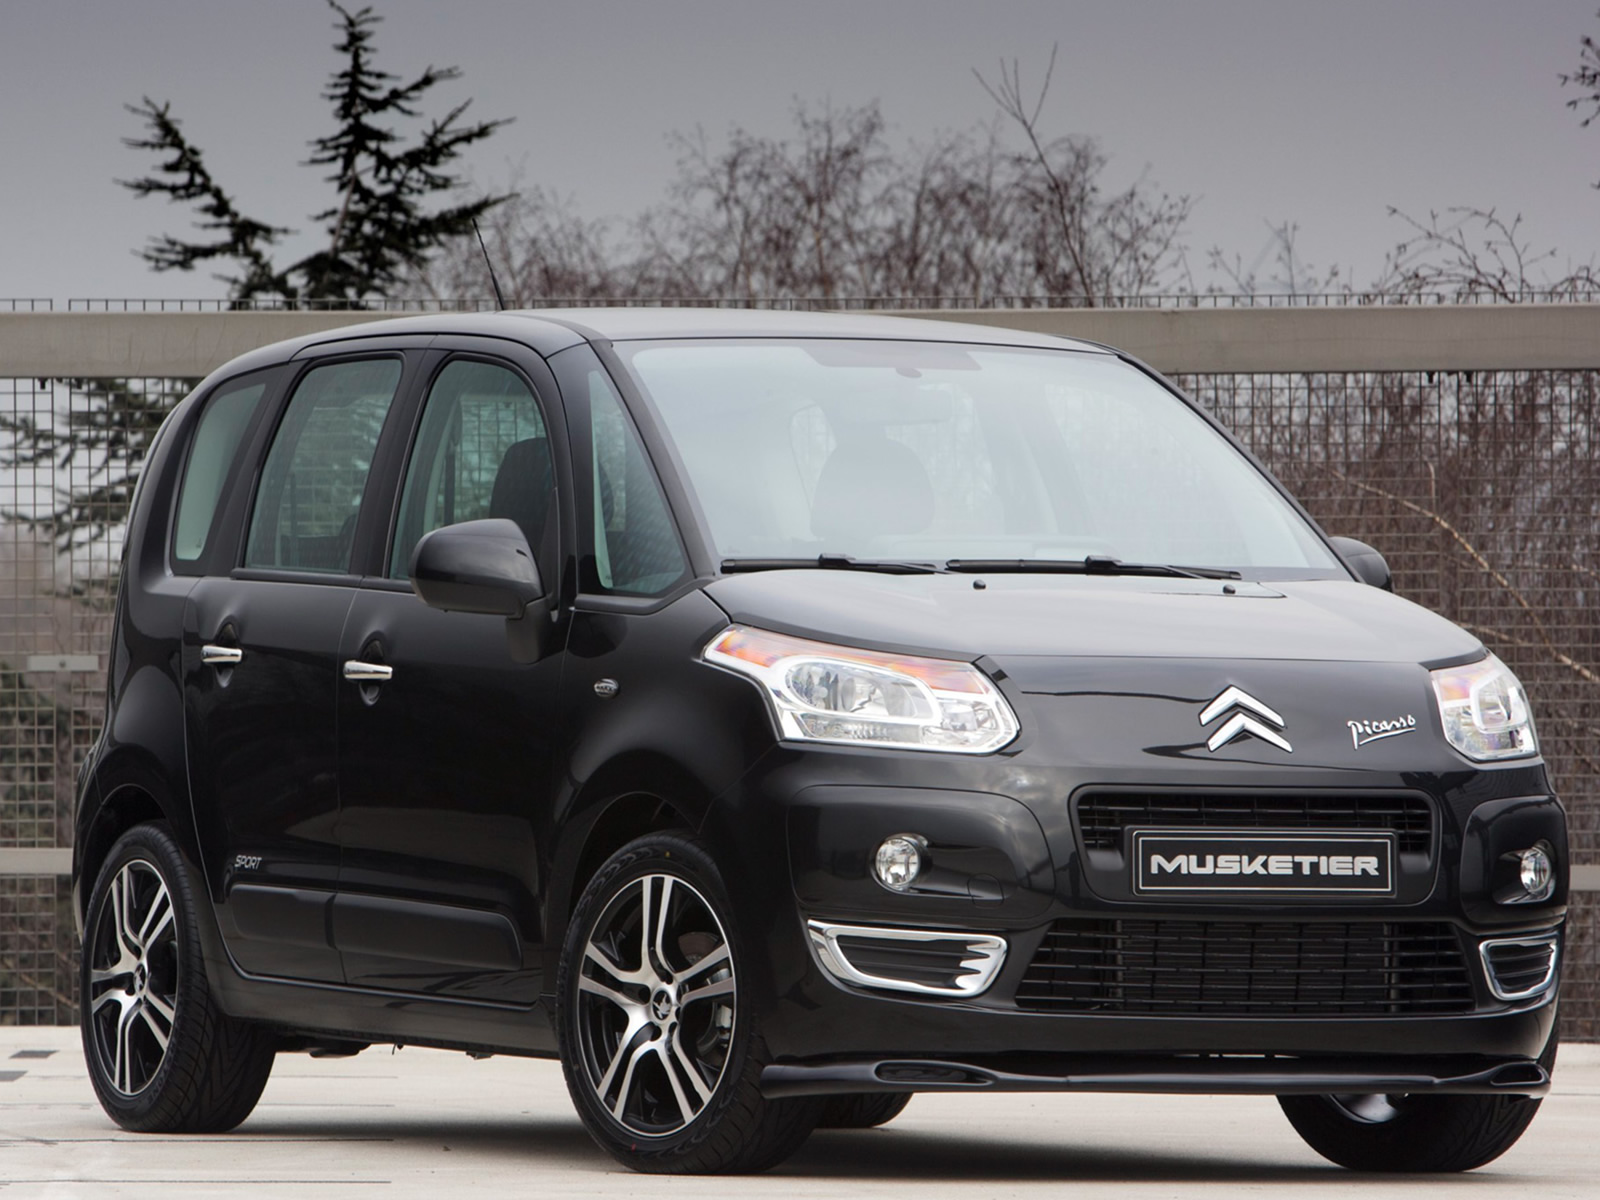 car au citroen c3 picasso tuning used and new cars from. Black Bedroom Furniture Sets. Home Design Ideas